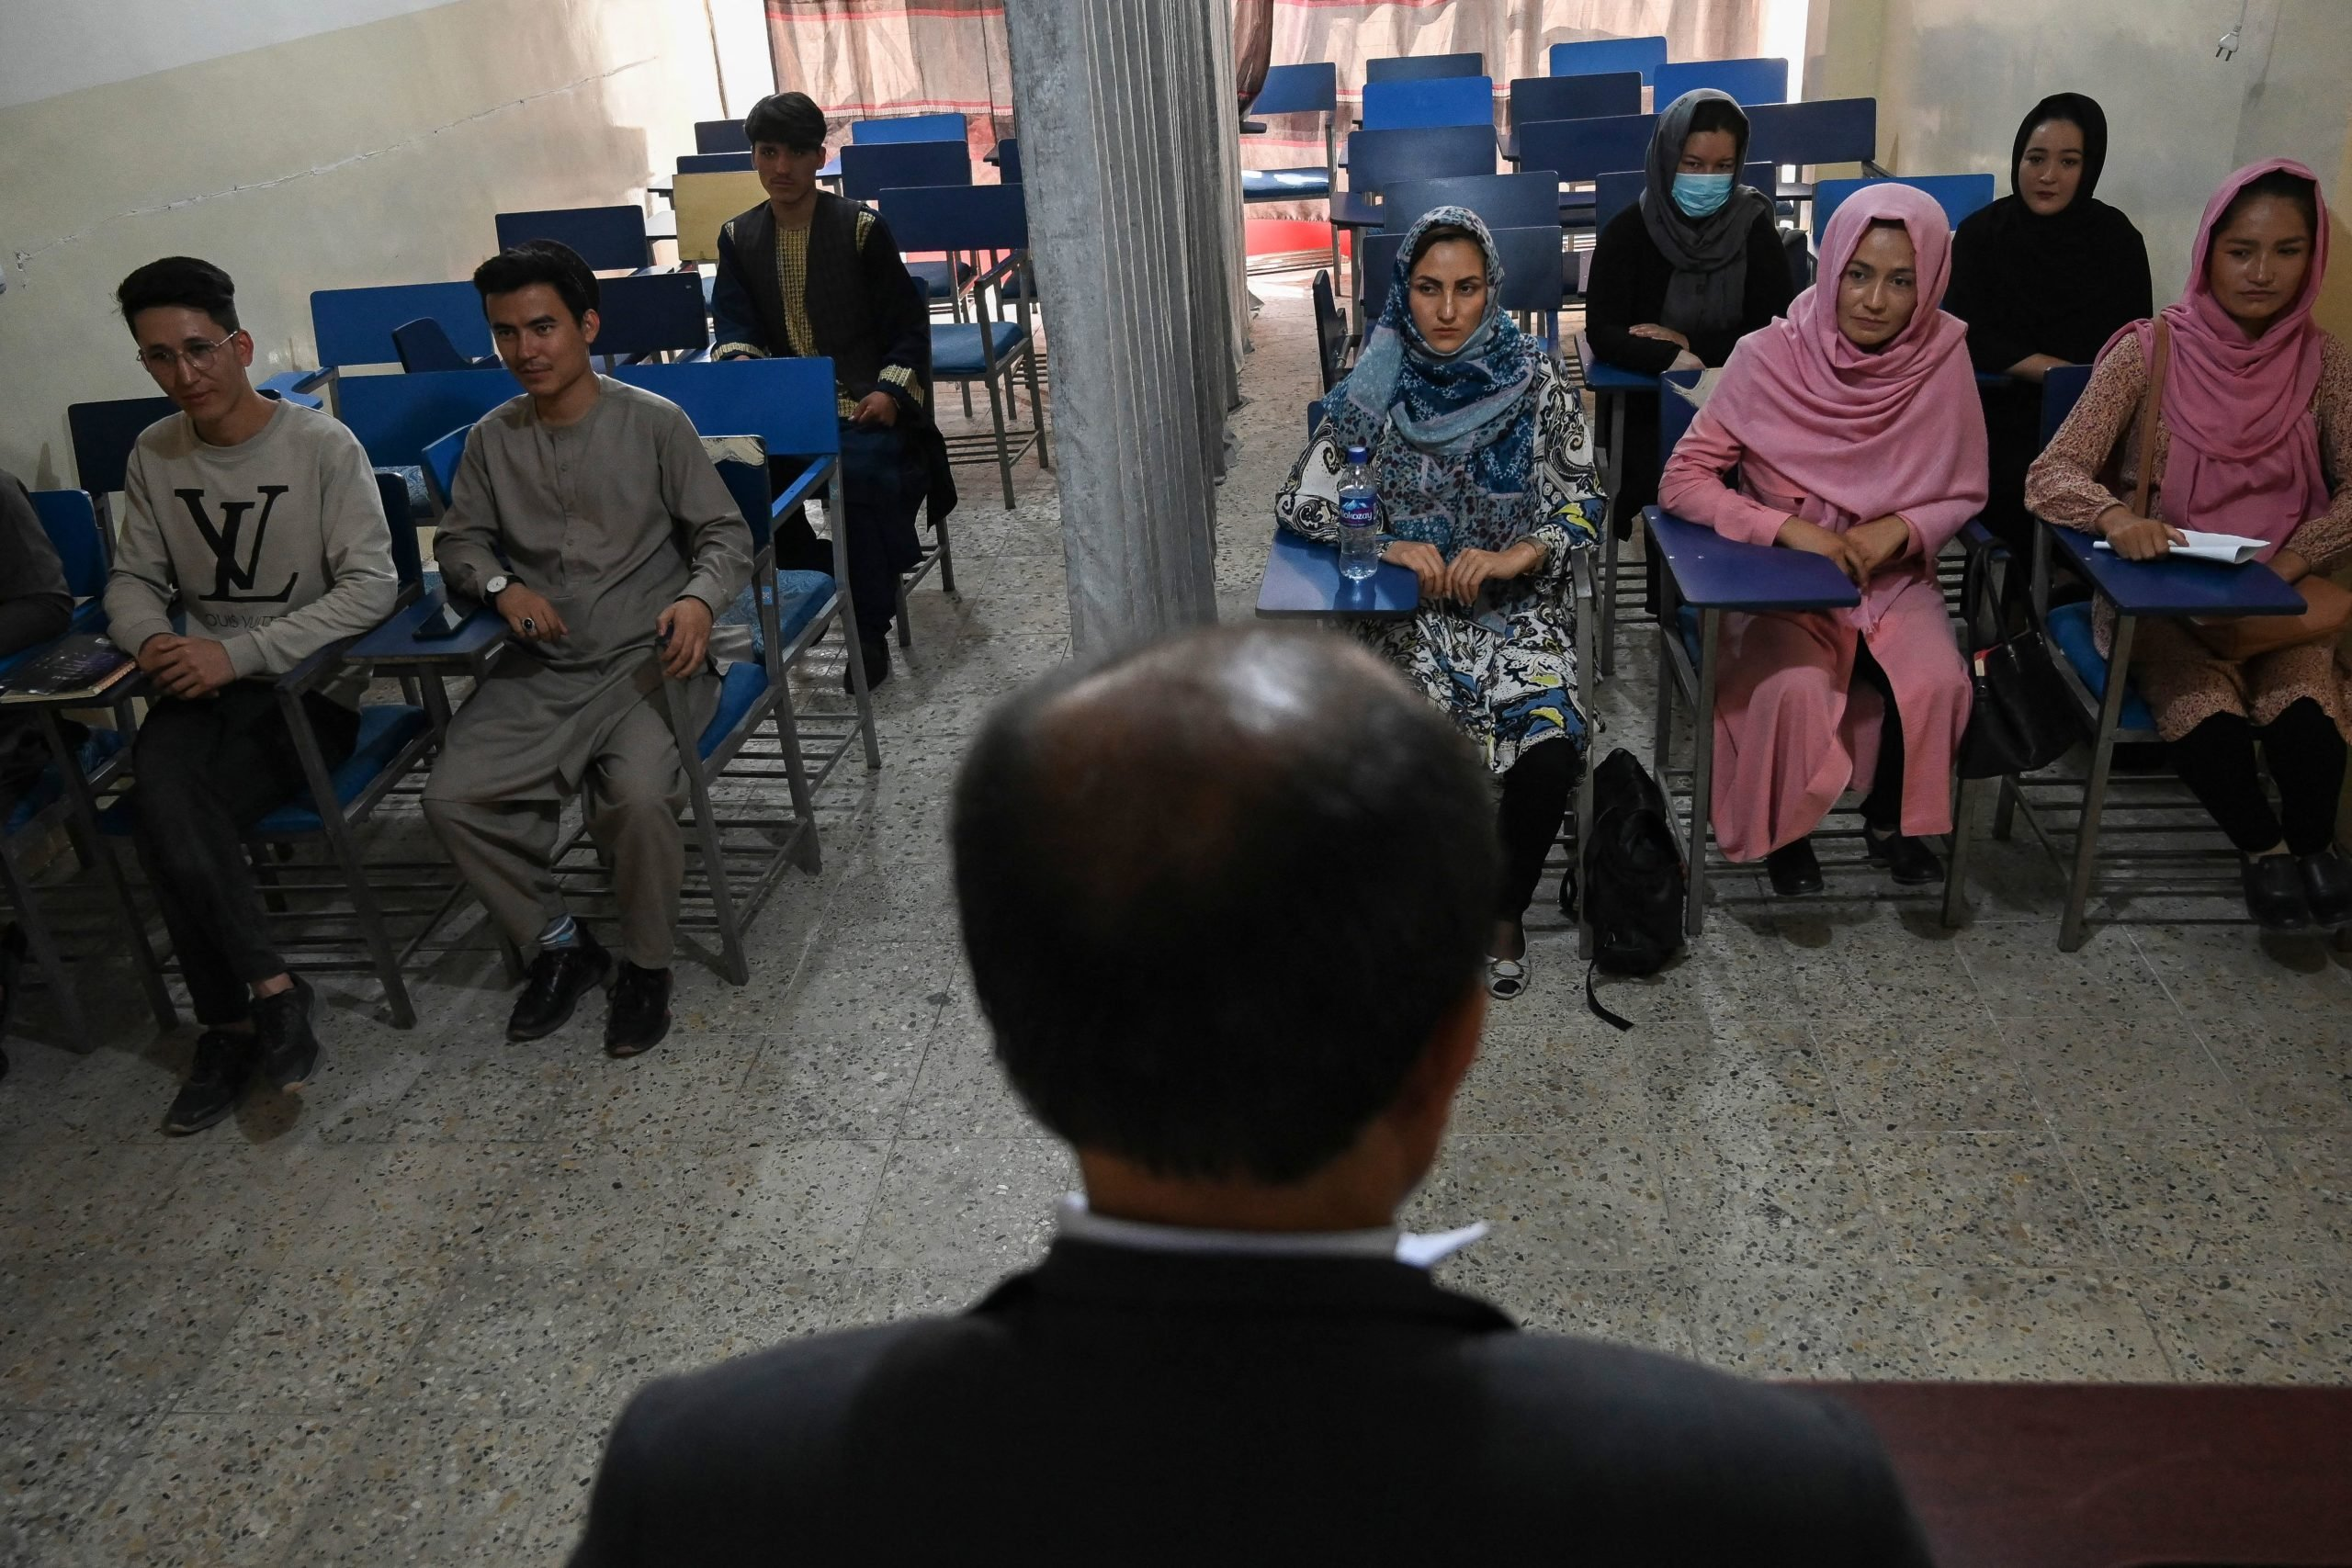 Students attend a class bifurcated by a curtain separating males and females at a private university in Kabul on September 7, 2021, to follow the Taliban's ruling. (Photo by AAMIR QURESHI/AFP via Getty Images)